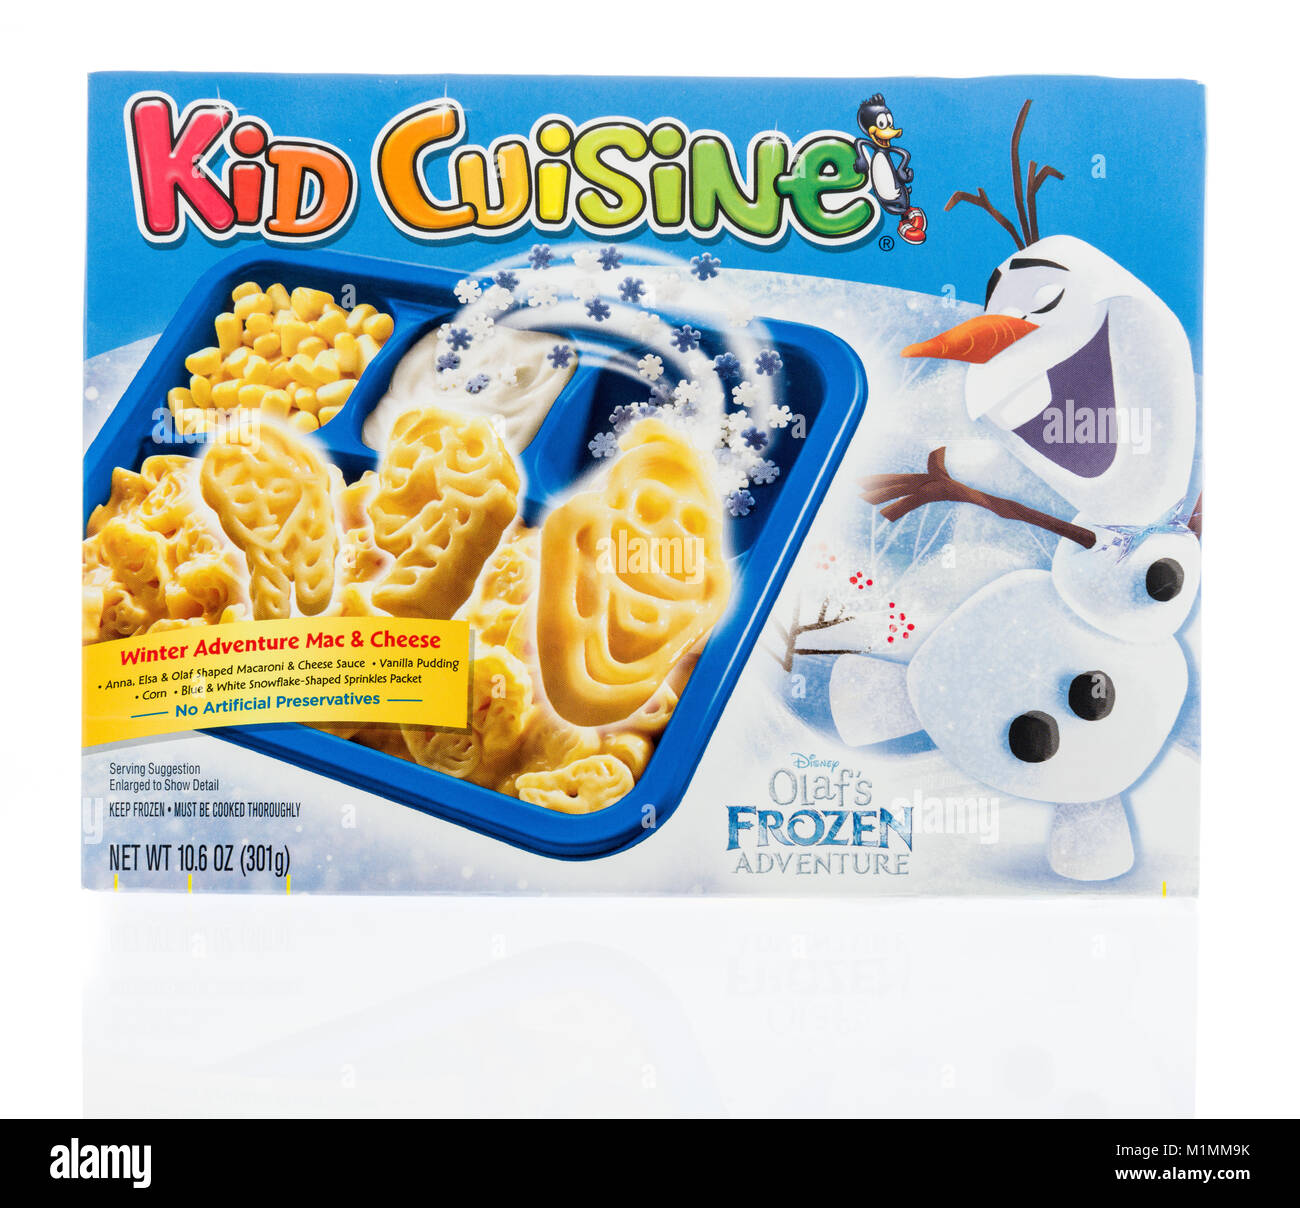 Winneconne, WI -  24 January 2018: A package of Kid Cuisine featuring Olaf's frozen adventure on an isolated - Stock Image